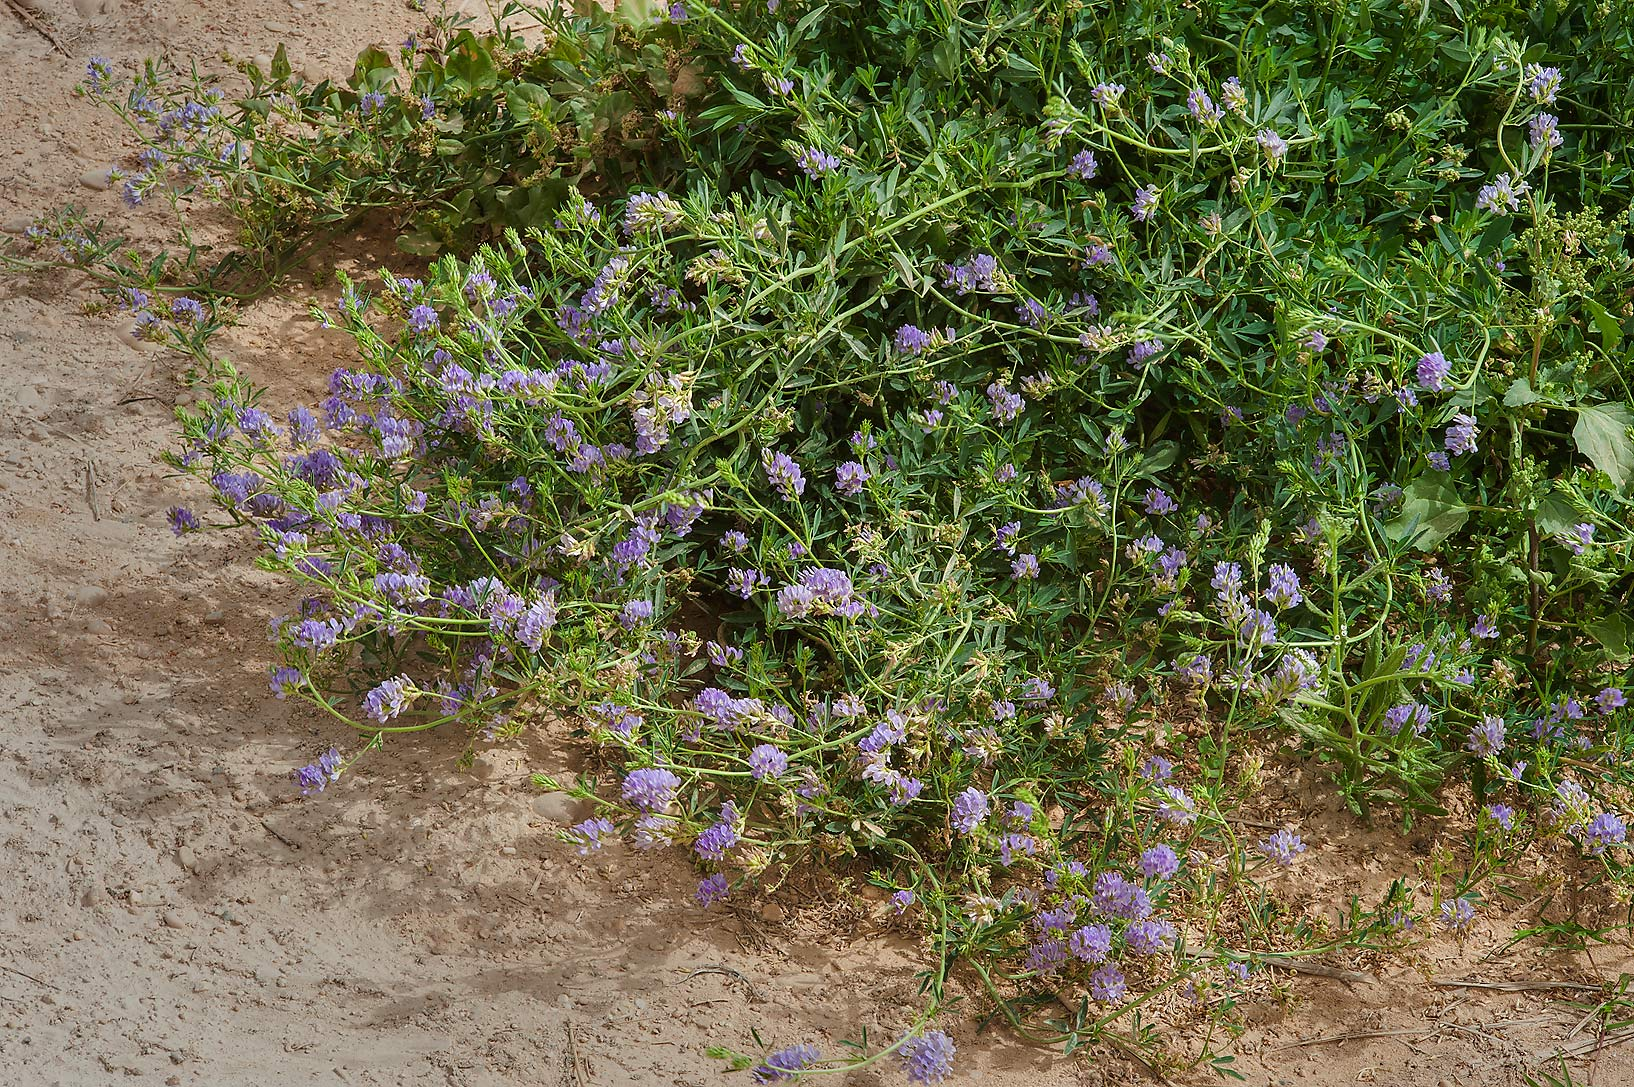 Bush of alfalfa (lucerne, Medicago sativa, local...in Irkhaya (Irkaya) Farms. Qatar